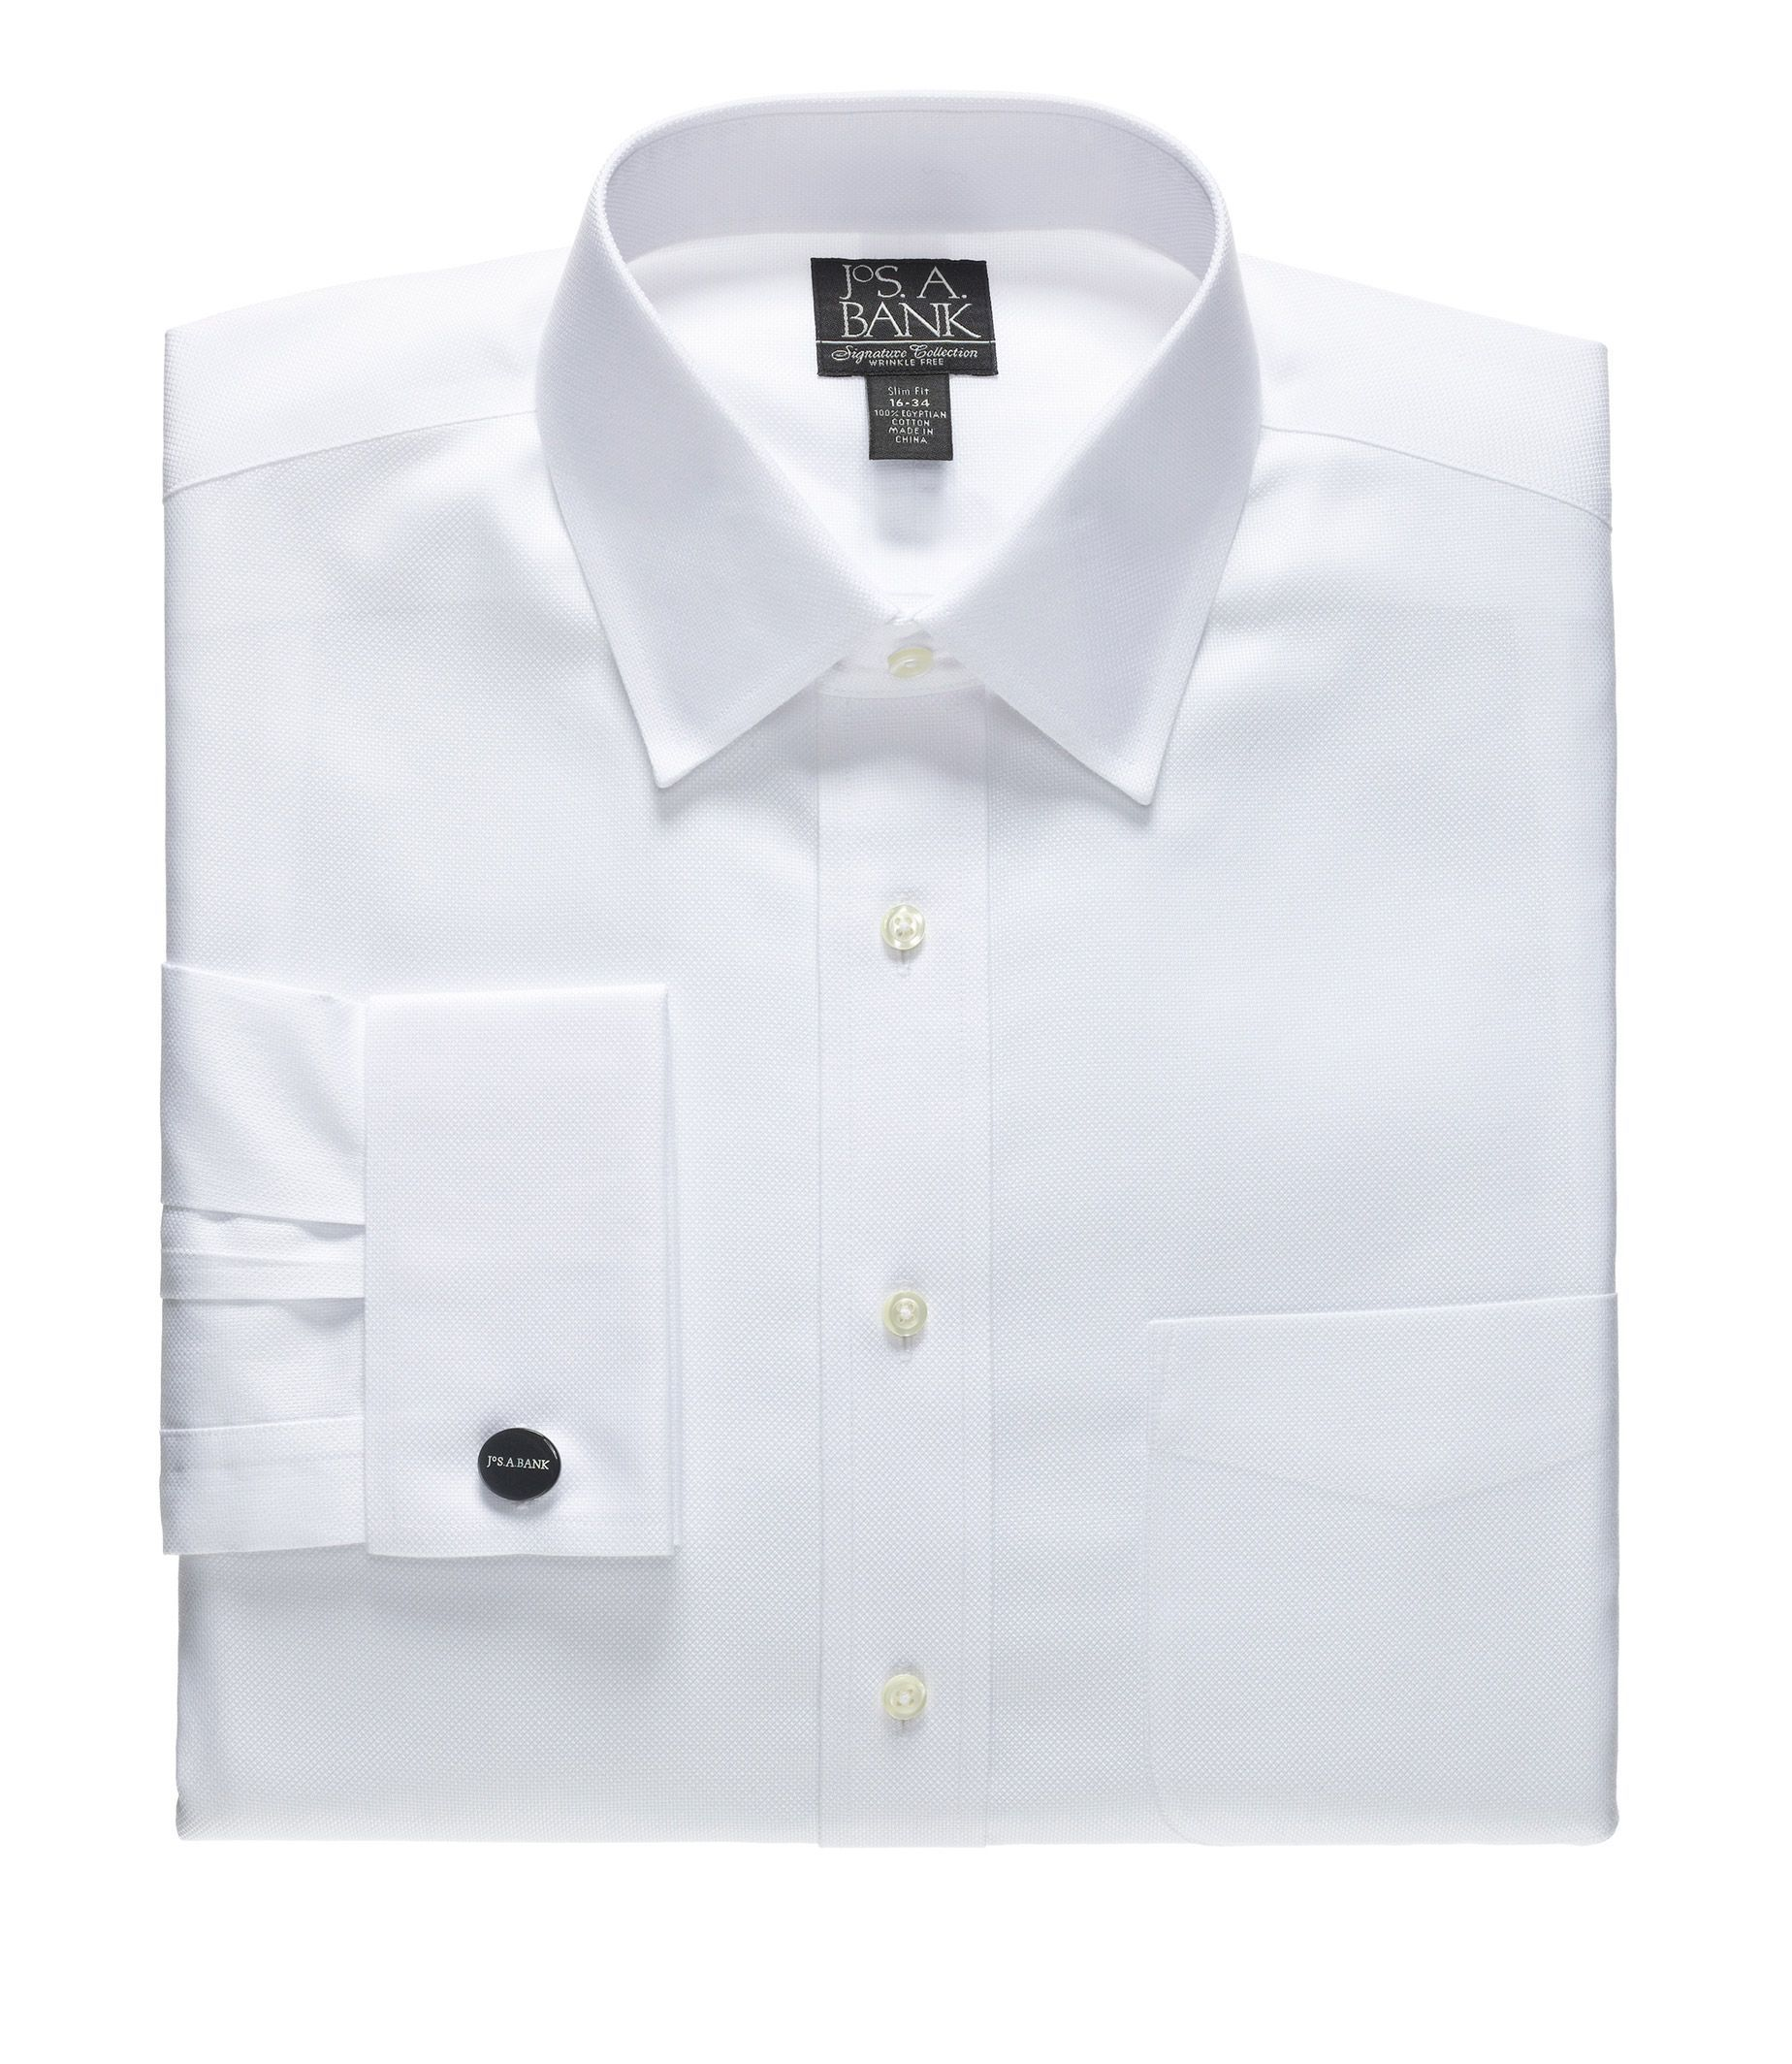 Signature Slim Fit Spread Collar French Cuff Royal Oxford Dress Shirt